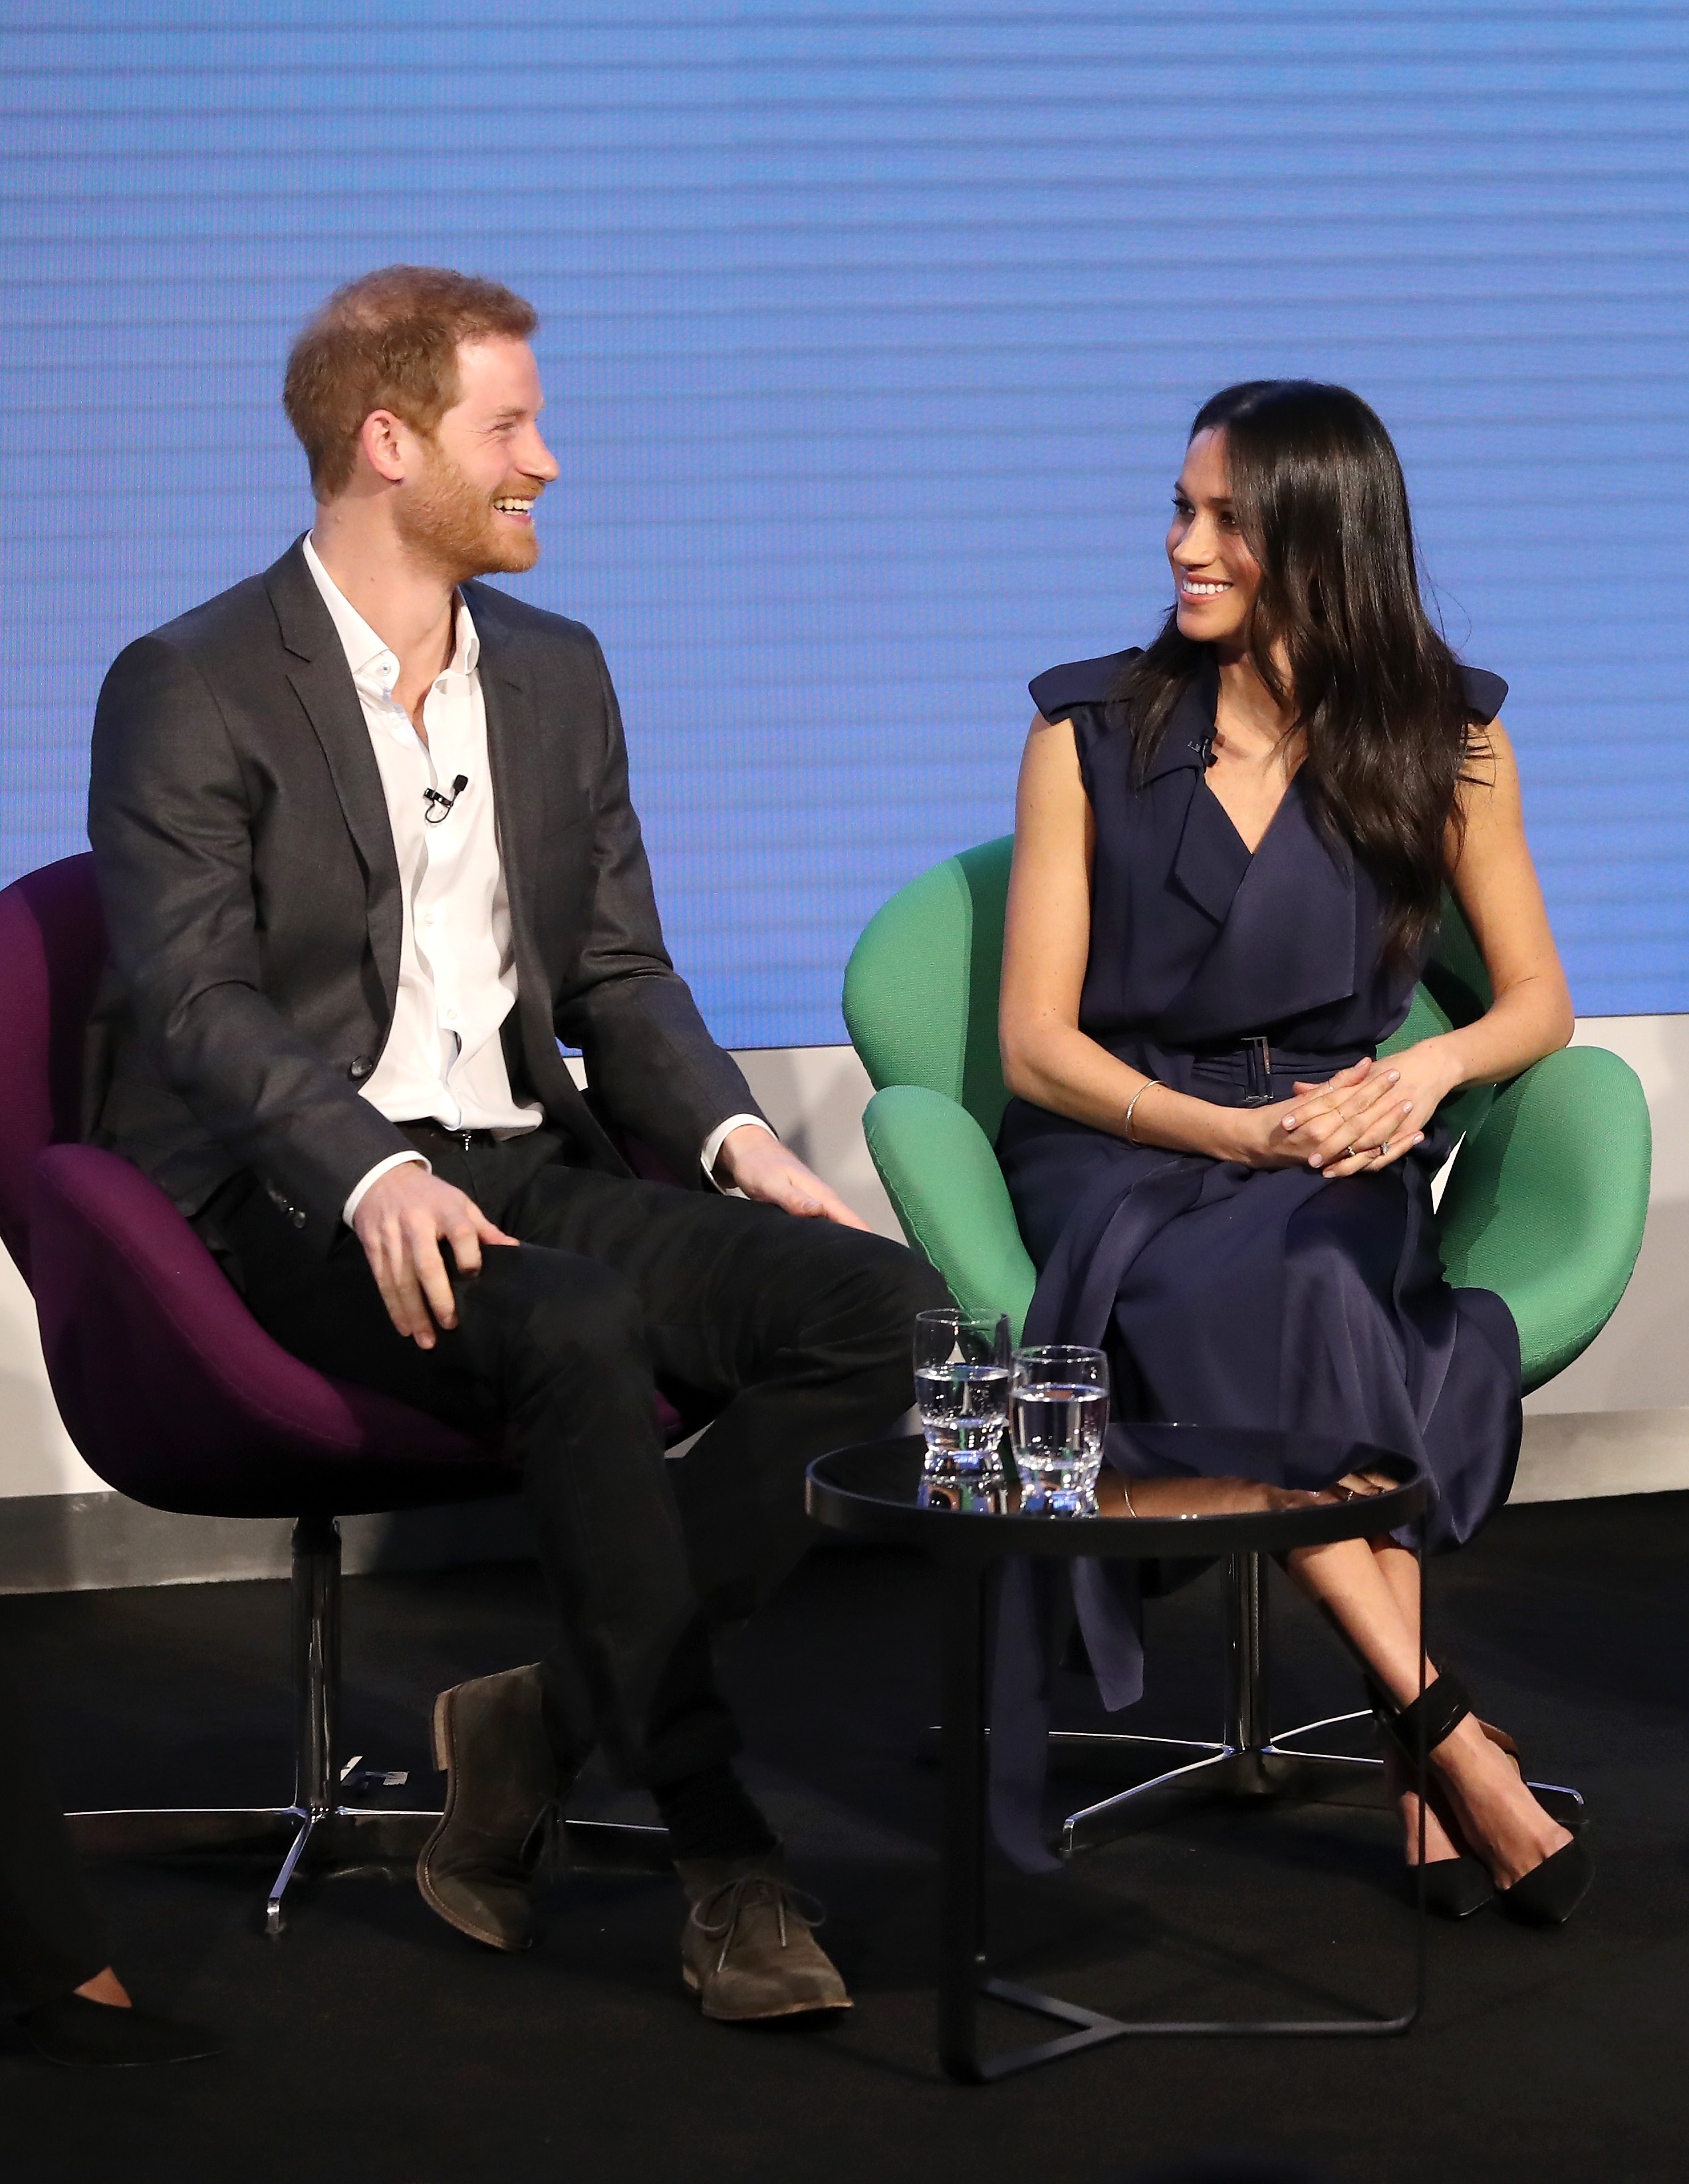 Prince Harry and Meghan MarkleFirst Annual Royal Foundation Forum, London, UK - 28 Feb 2018Under the theme 'Making a Difference Together', the event will showcase the programmes run or initiated by The Royal Foundation. WEARING JASON WU DRESS SHOES BY AQUAZURRA